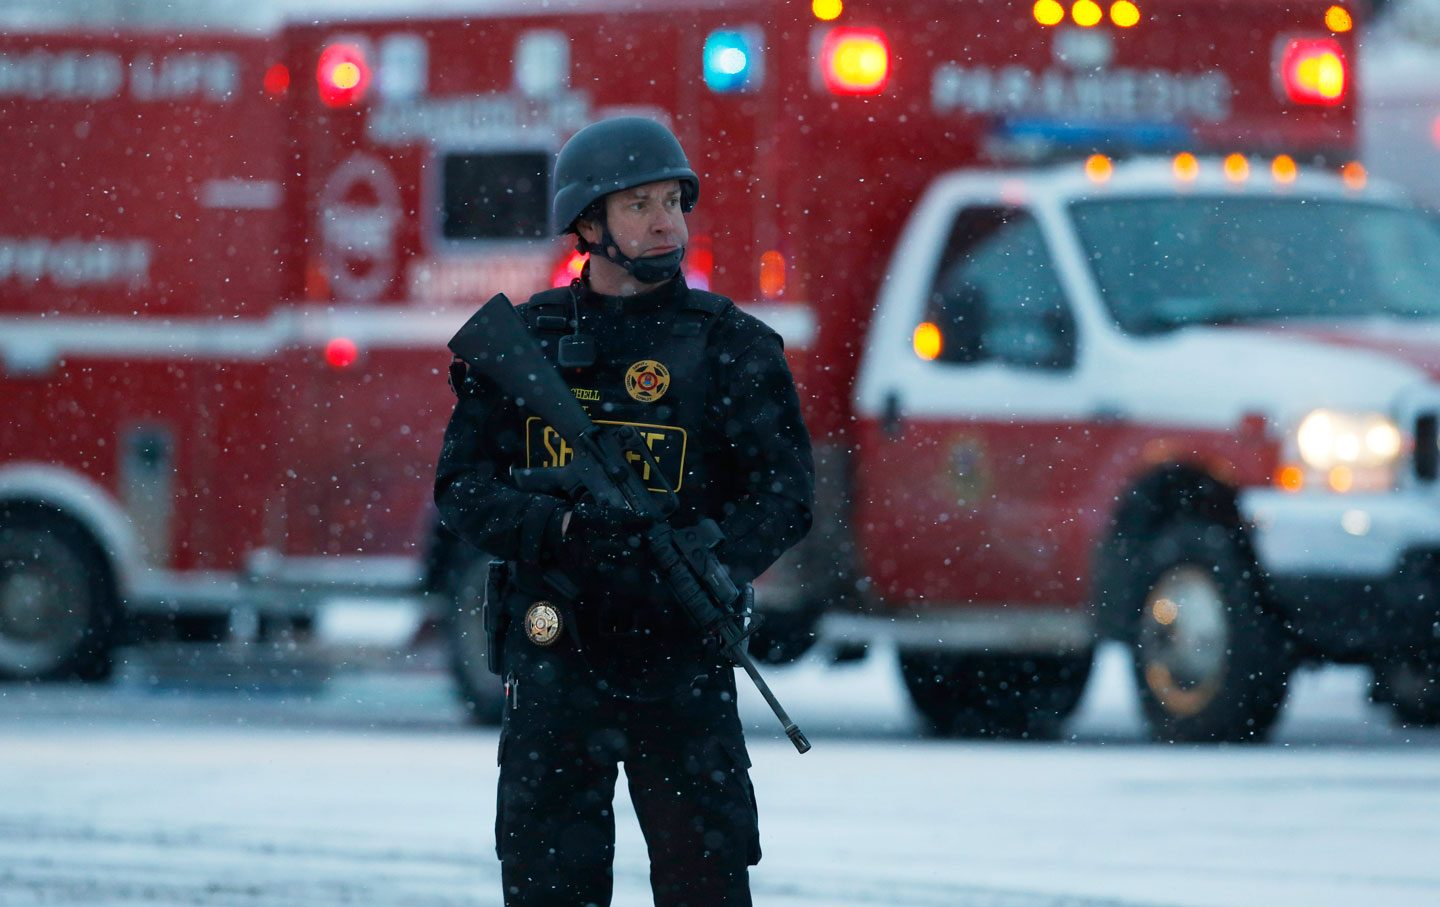 planned_parenthood_shooting_colorado_police_ap_img